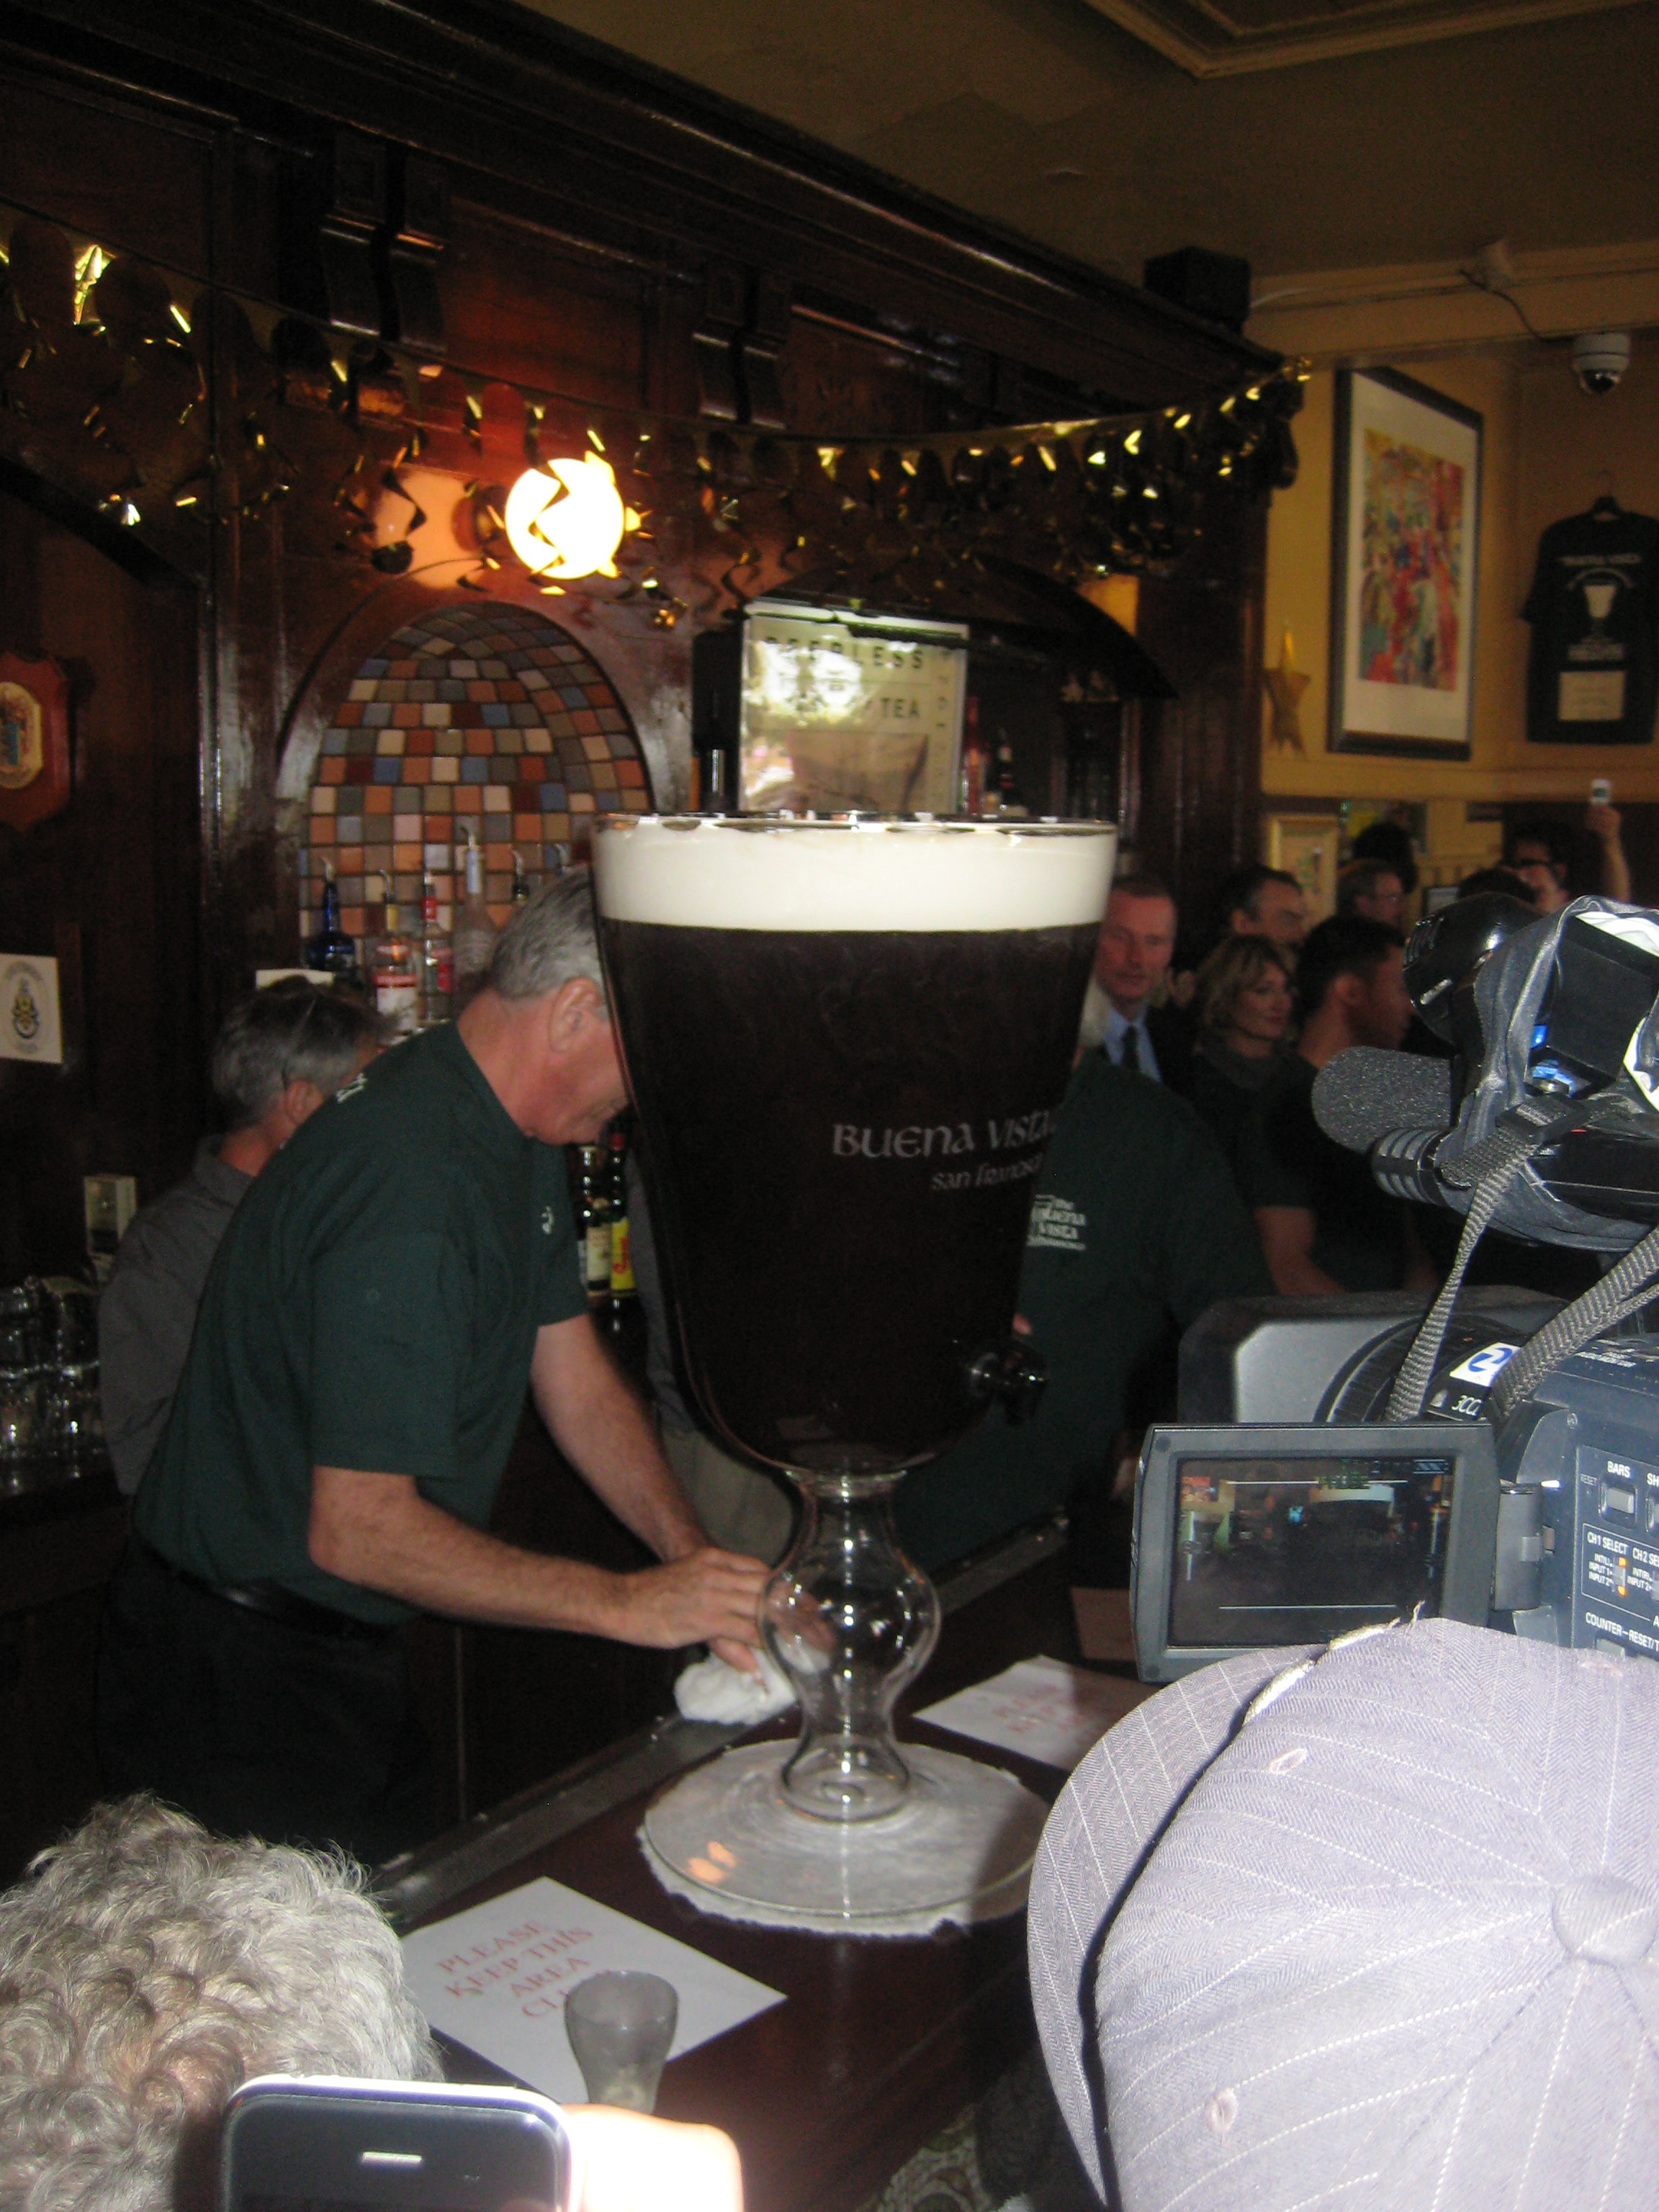 The world's largest Irish coffee.